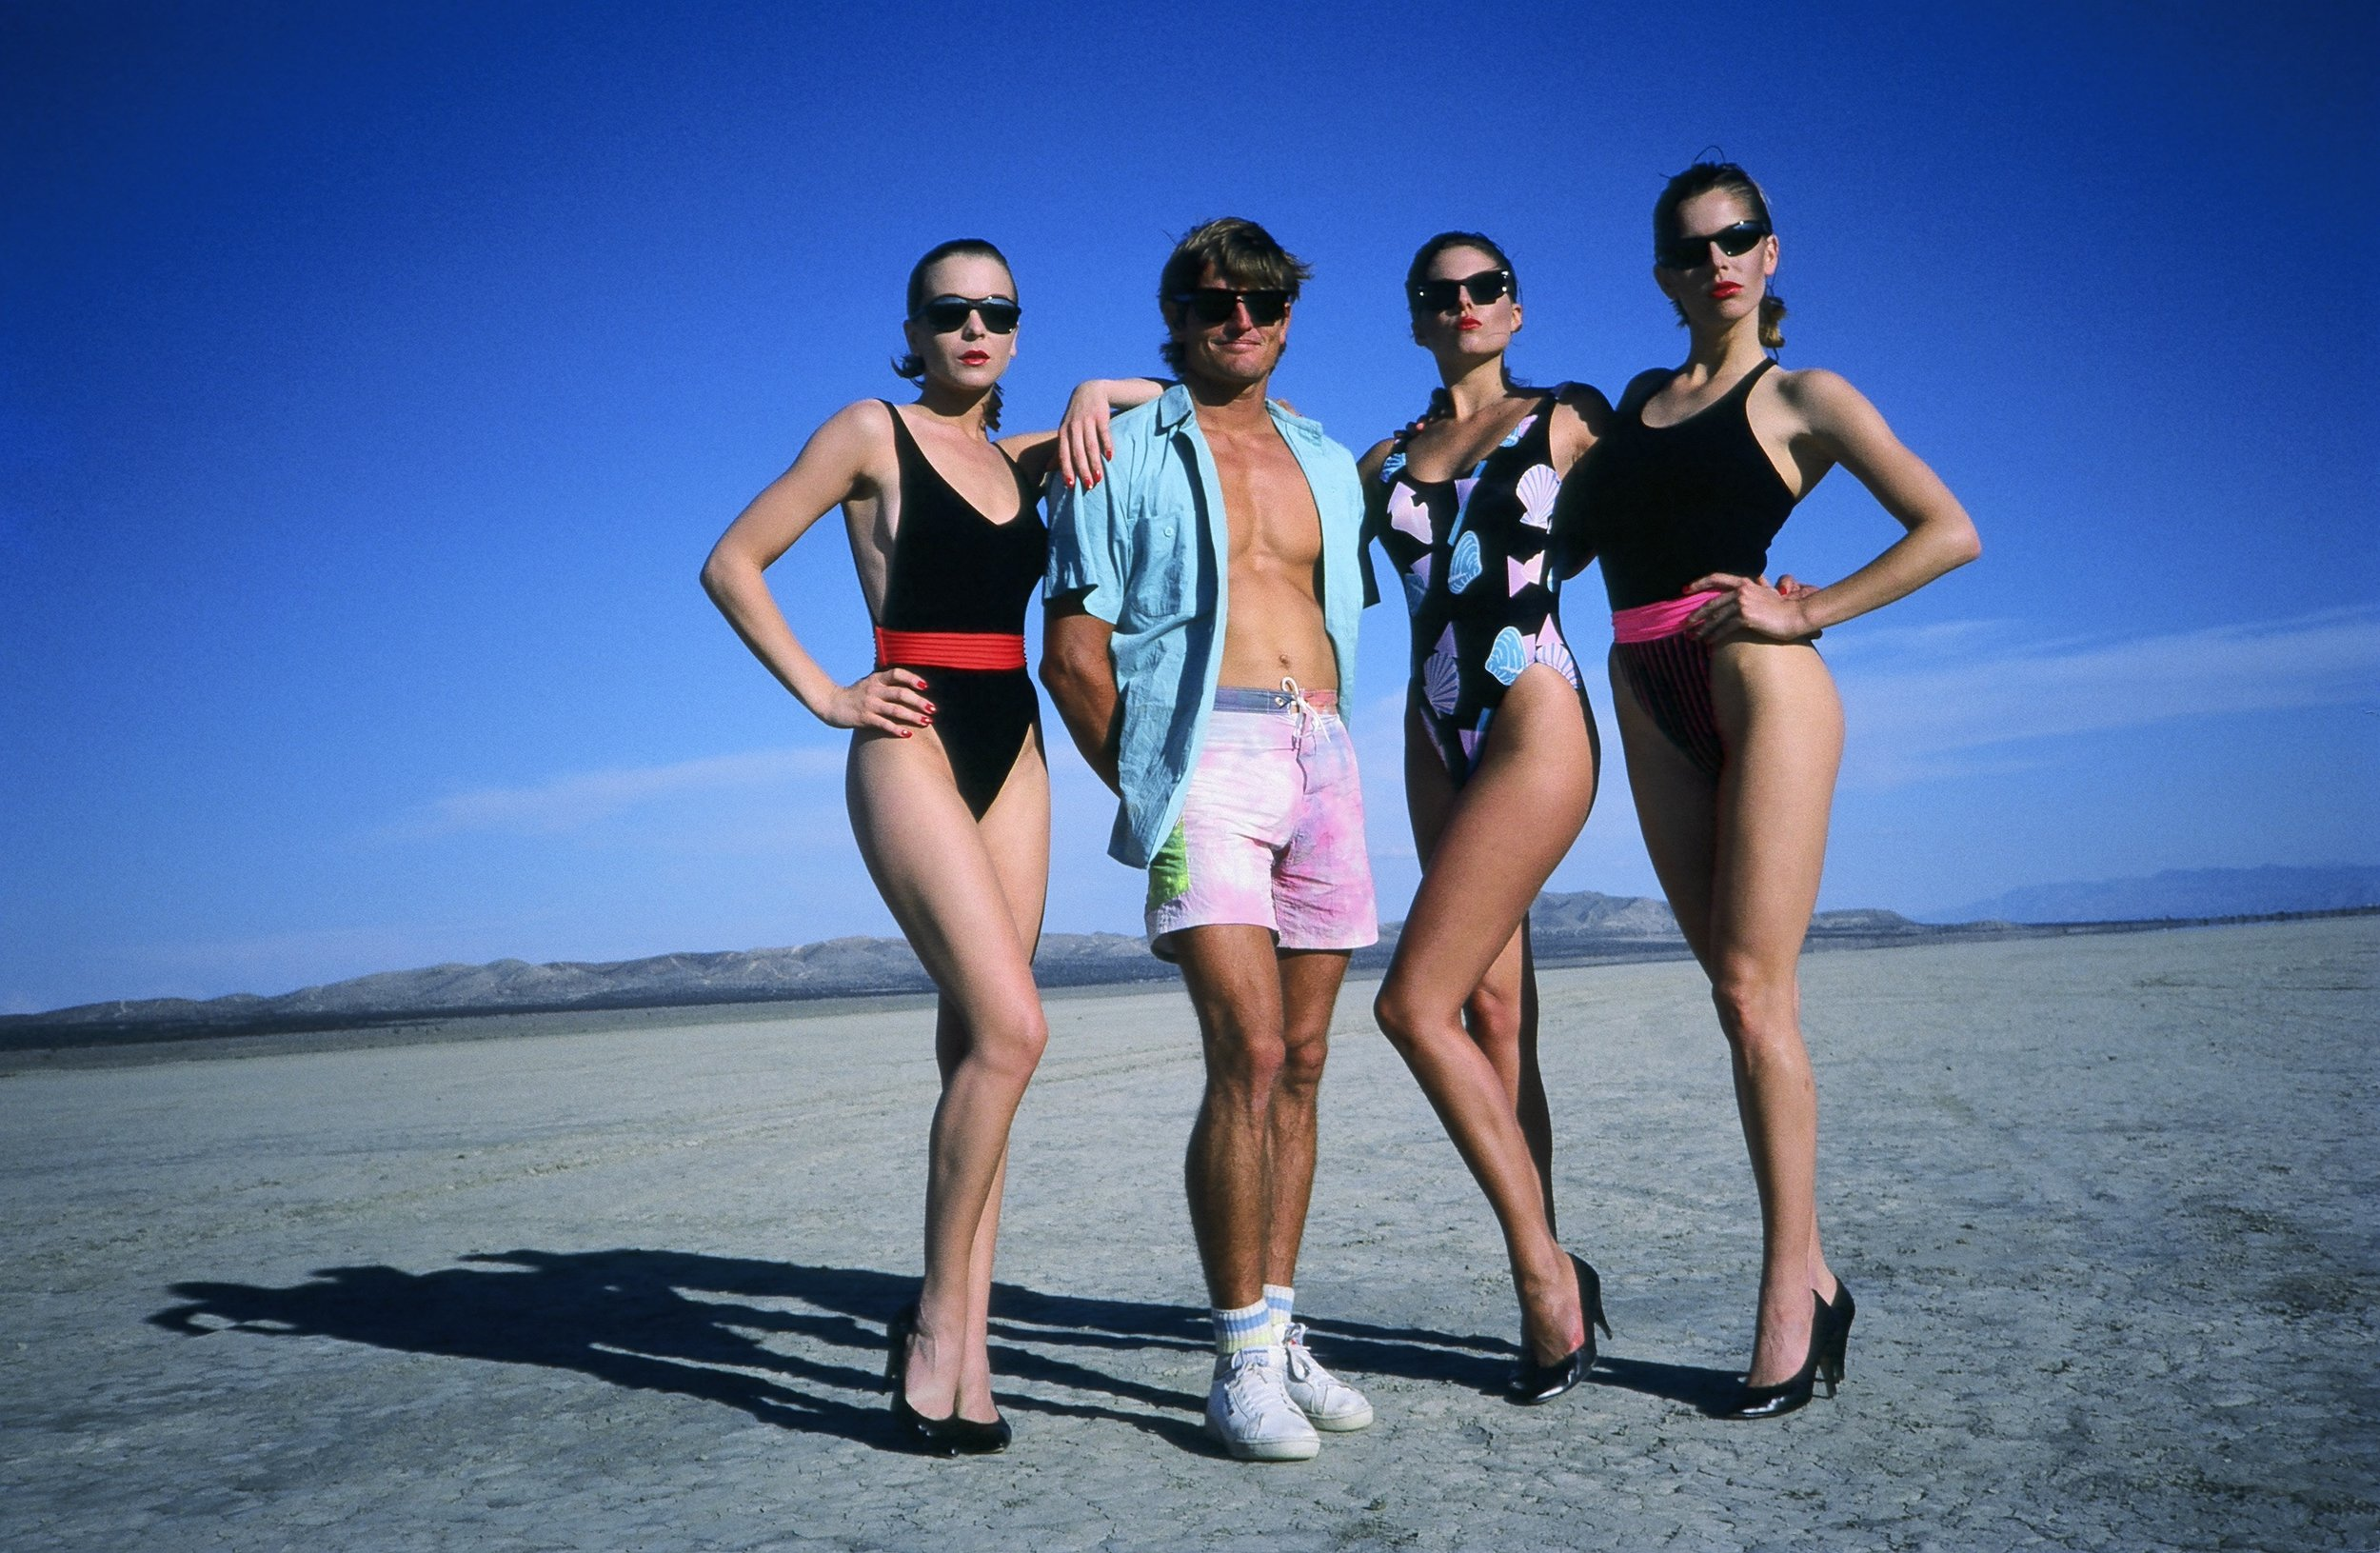 Buzzy stumbled into modeling. Bruce Weber took some photos for Vogue that Ralph Lauren saw. And what Lauren saw in this Hawaiian surfer was east coast preppy - a smile Kennedyesque dude. And that lead to a healthy contract modeling for Polo, hanging out at Studio 54, etc.    This is Buzzy getting his Robert Palmer on with some models in the desert.